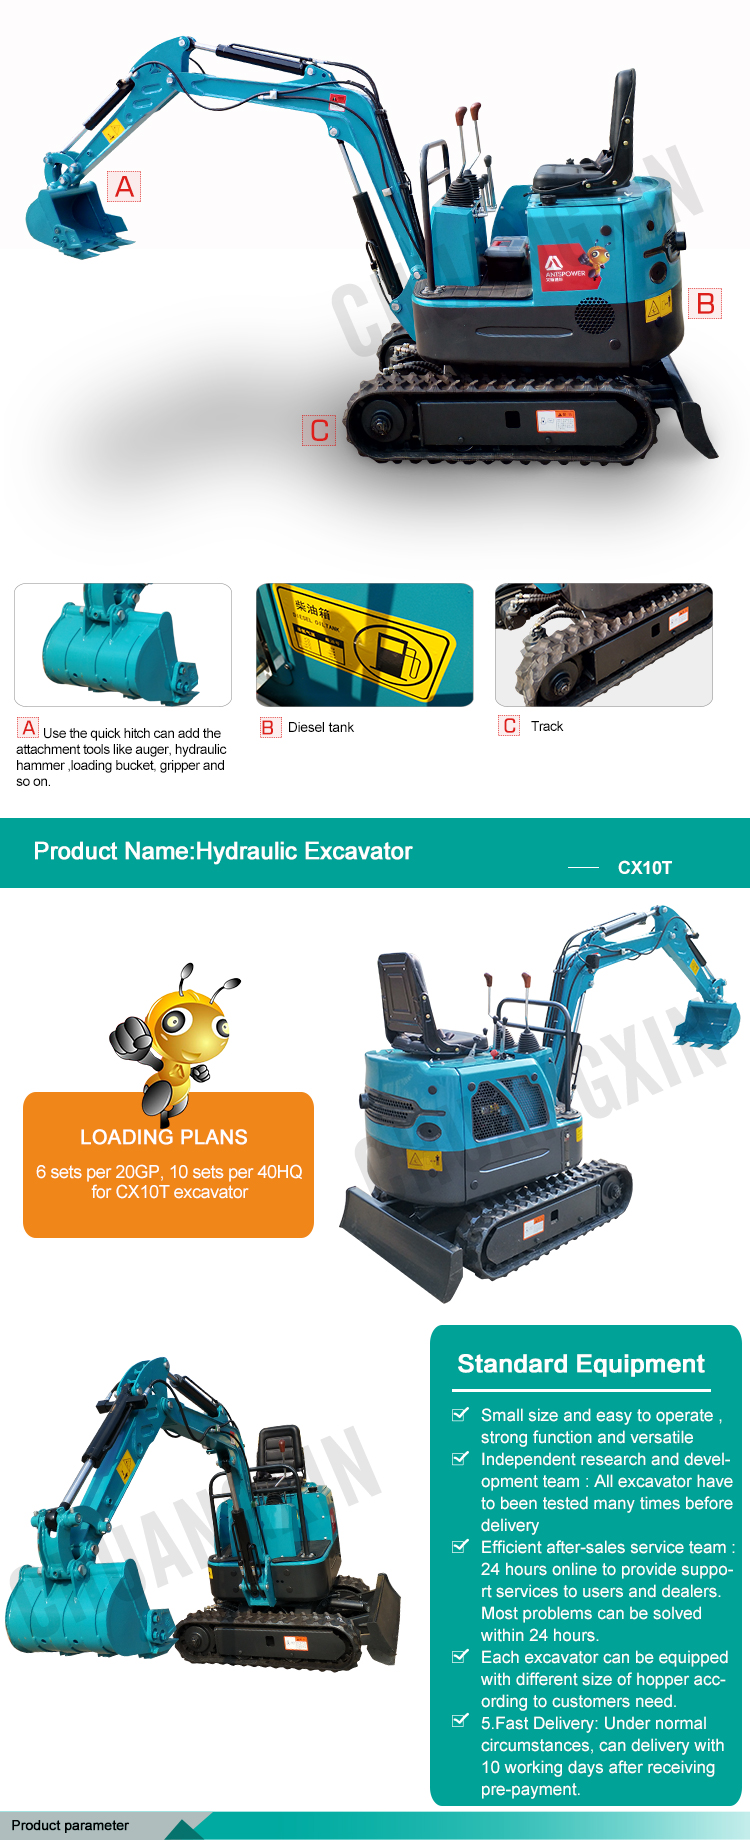 Construction machine crawler excavator appearance superior performance high configuration hydraulic excavator